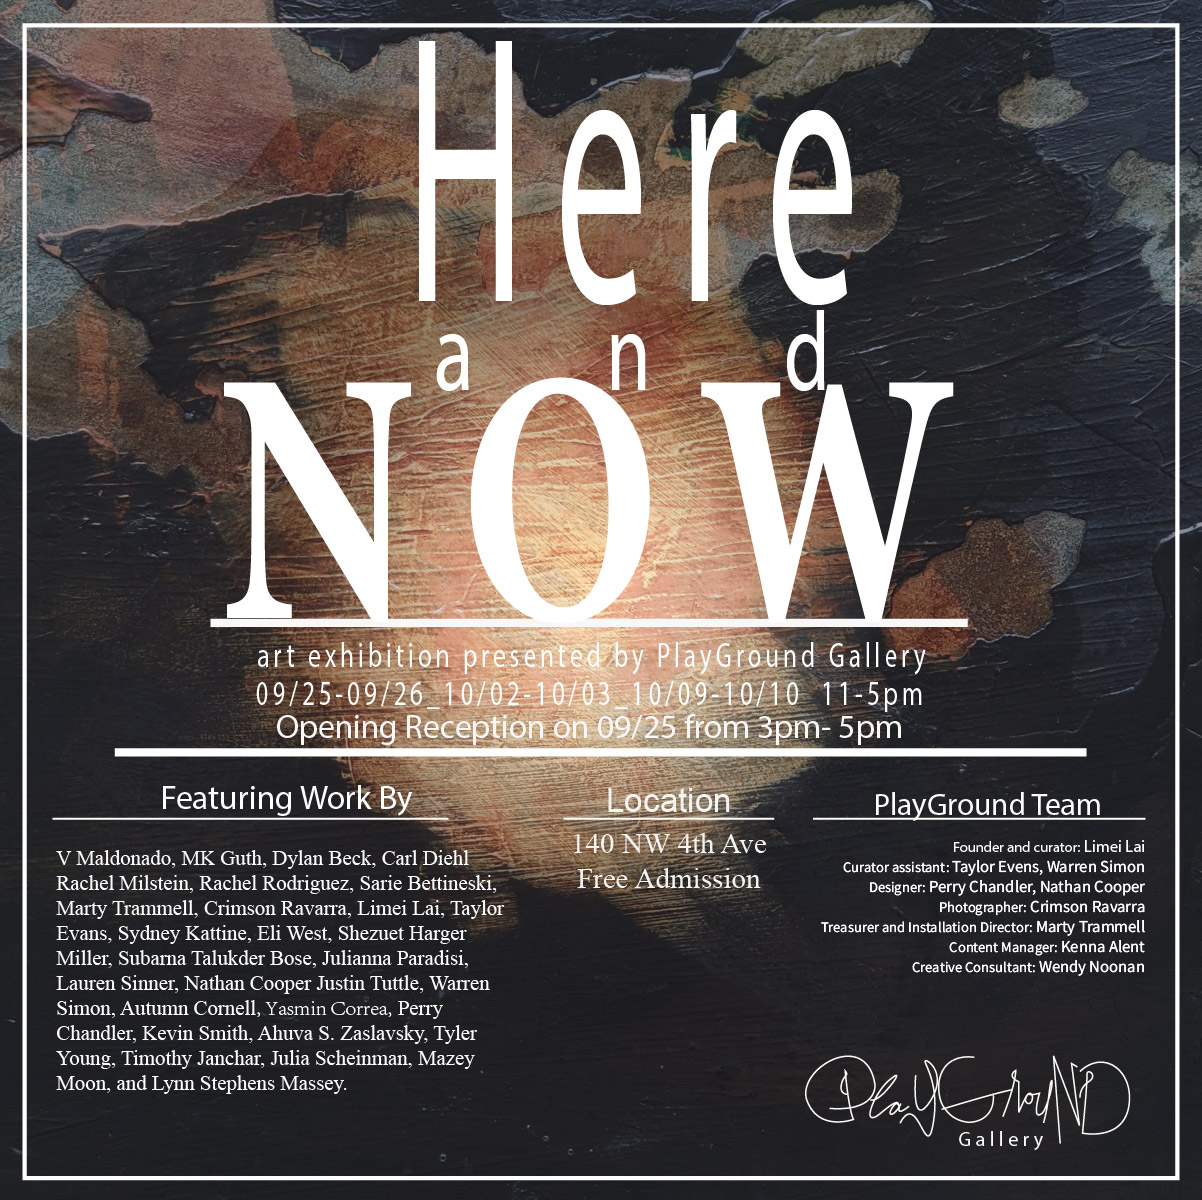 """The words """"Here and Now"""" in large print, as well as show information, featured artists and PlayGround Team, superimposed in white against a wall of peeling paint."""